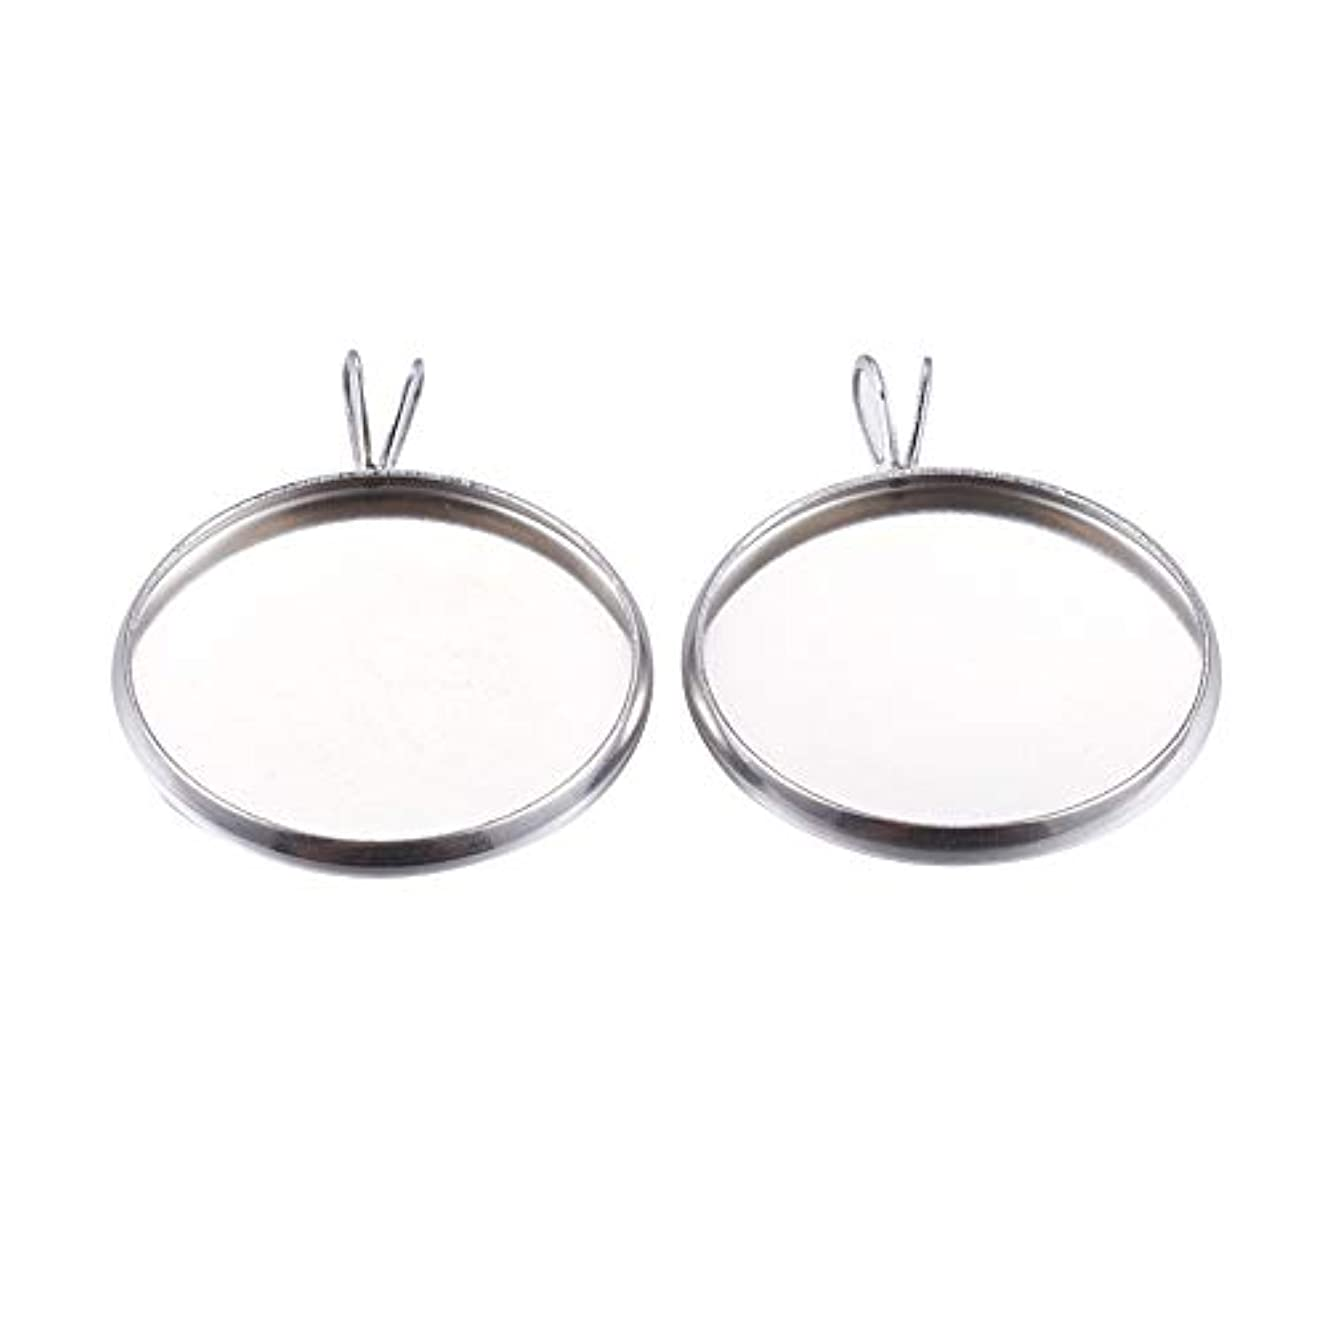 PH PandaHall 50pcs Stainless Steel Cabochon Settings Pendant Flat Round Bezel Pendant Trays Blanks for Necklace Crafts Jewelry Making (Tray: 20mm)